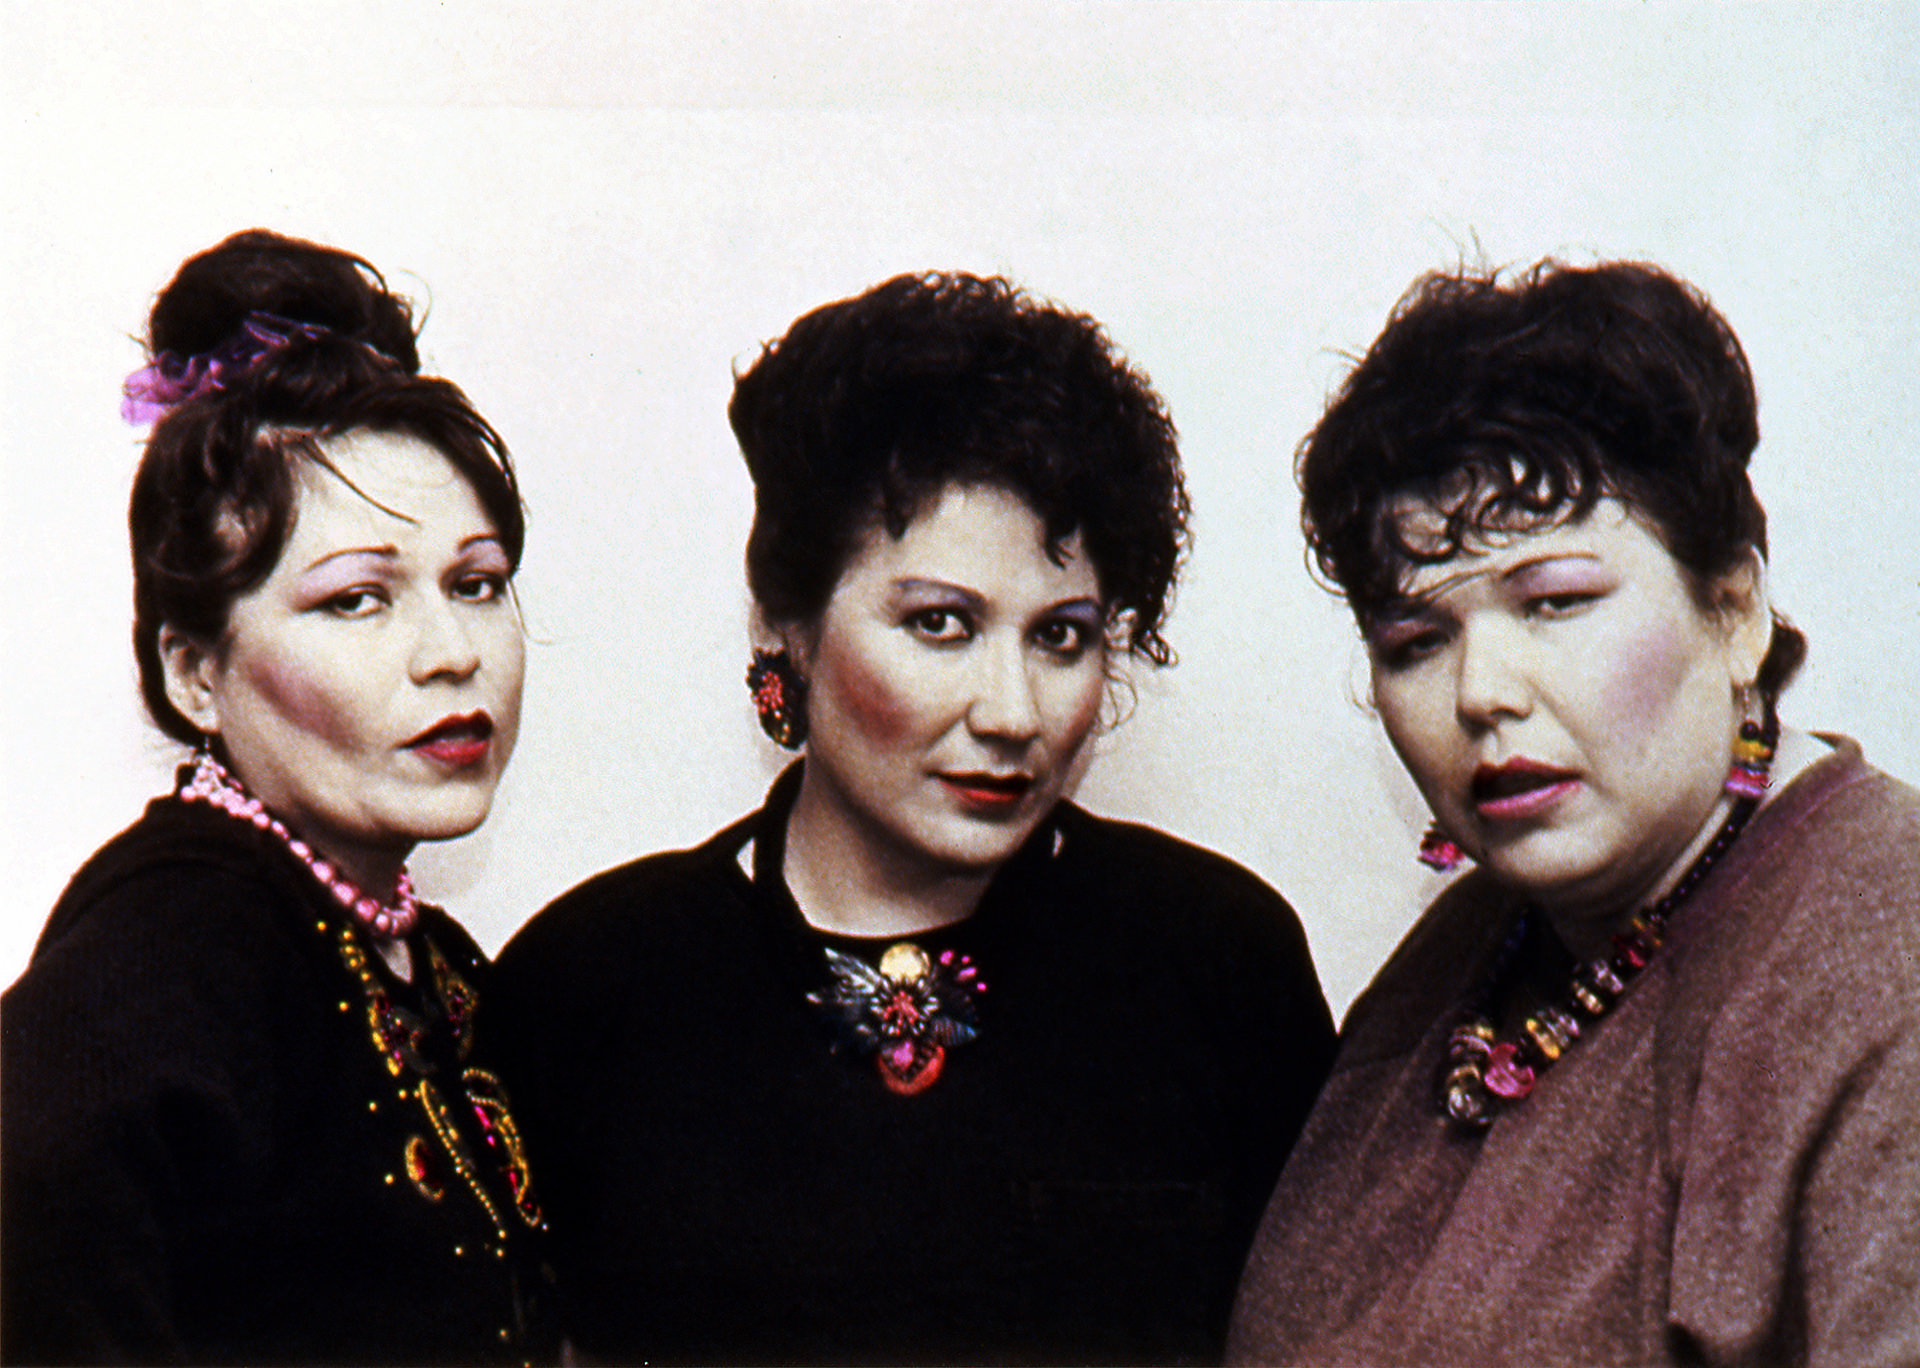 This hand-coloured, high-contrast black-and-white photo shows three women bust-length, facing the camera. Their hair is done up and they are wearing showy makeup. The background is neutral white.